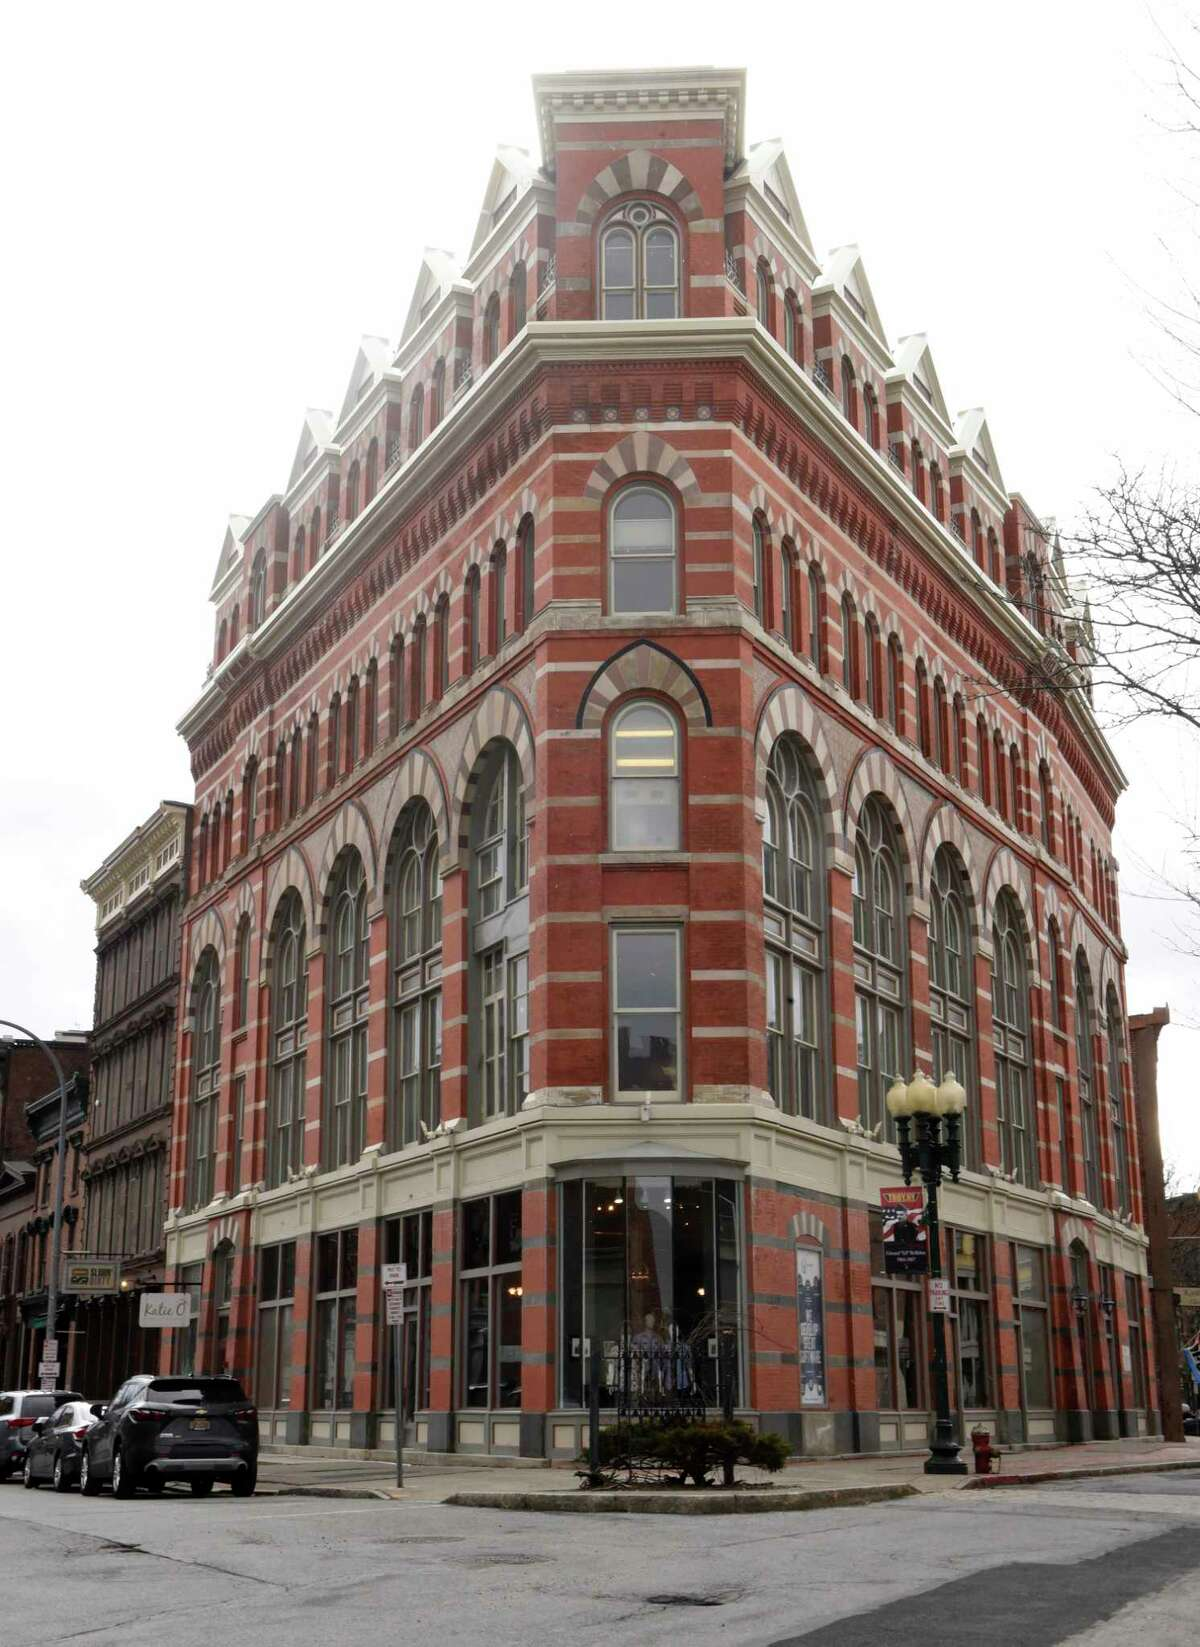 The Rice Building at First and River Streets might be one of the sites for filming The Gilded Age TV show on HBO on Thursday, Feb. 27, 2020 in Troy, N.Y. (Lori Van Buren/Times Union)